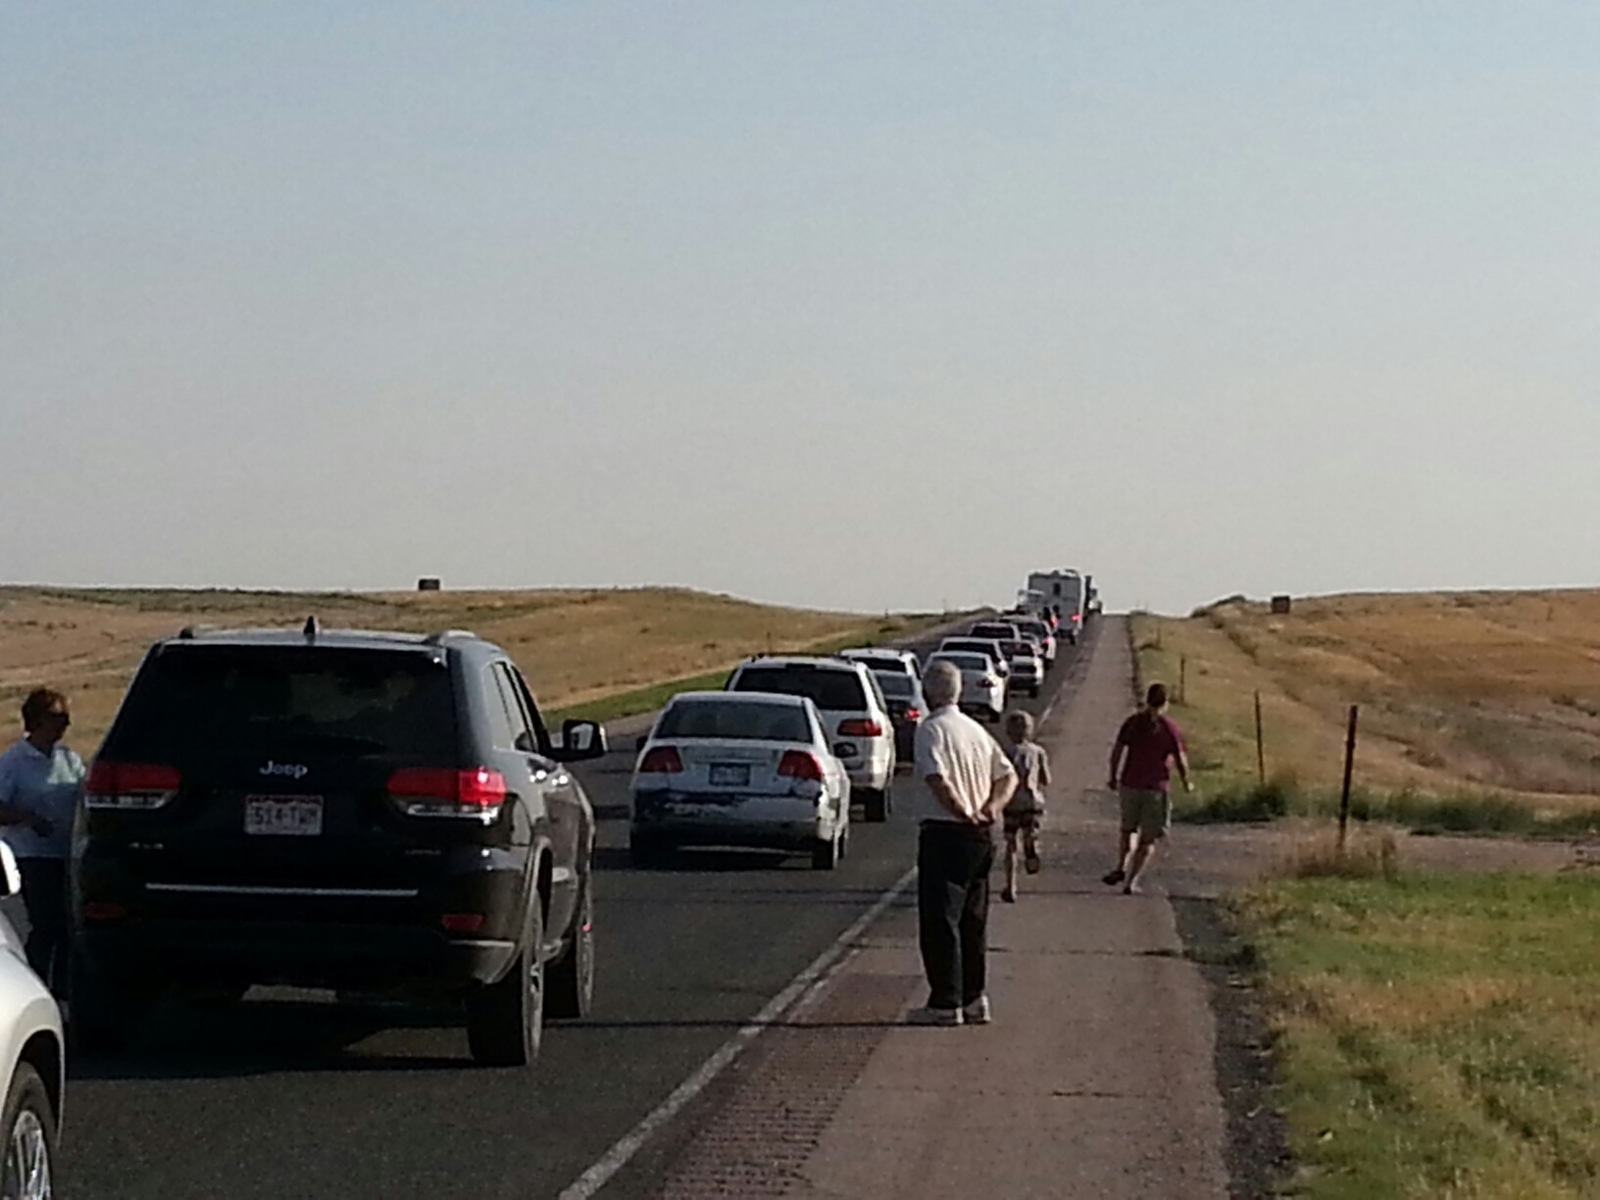 Horrendous traffic after the eclipse